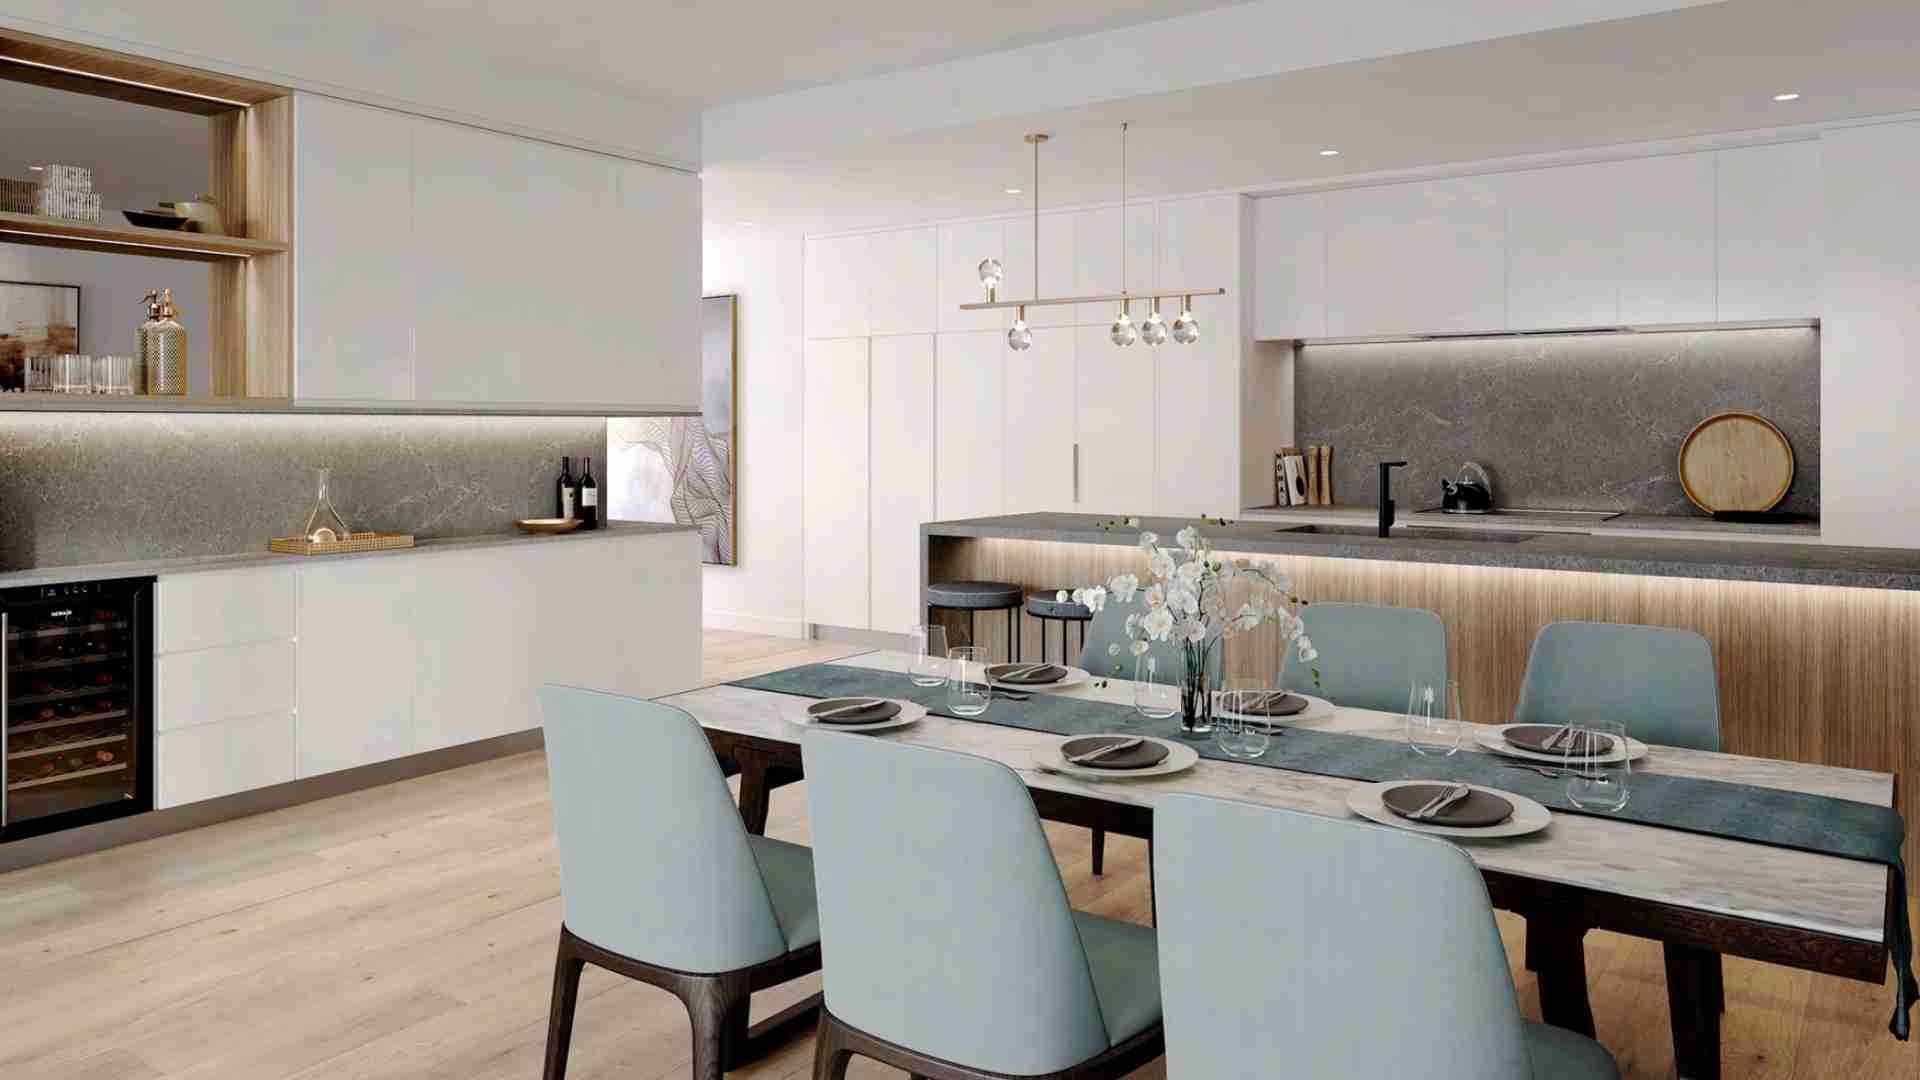 tiffany blue dining chairs, grey marble kitchen table